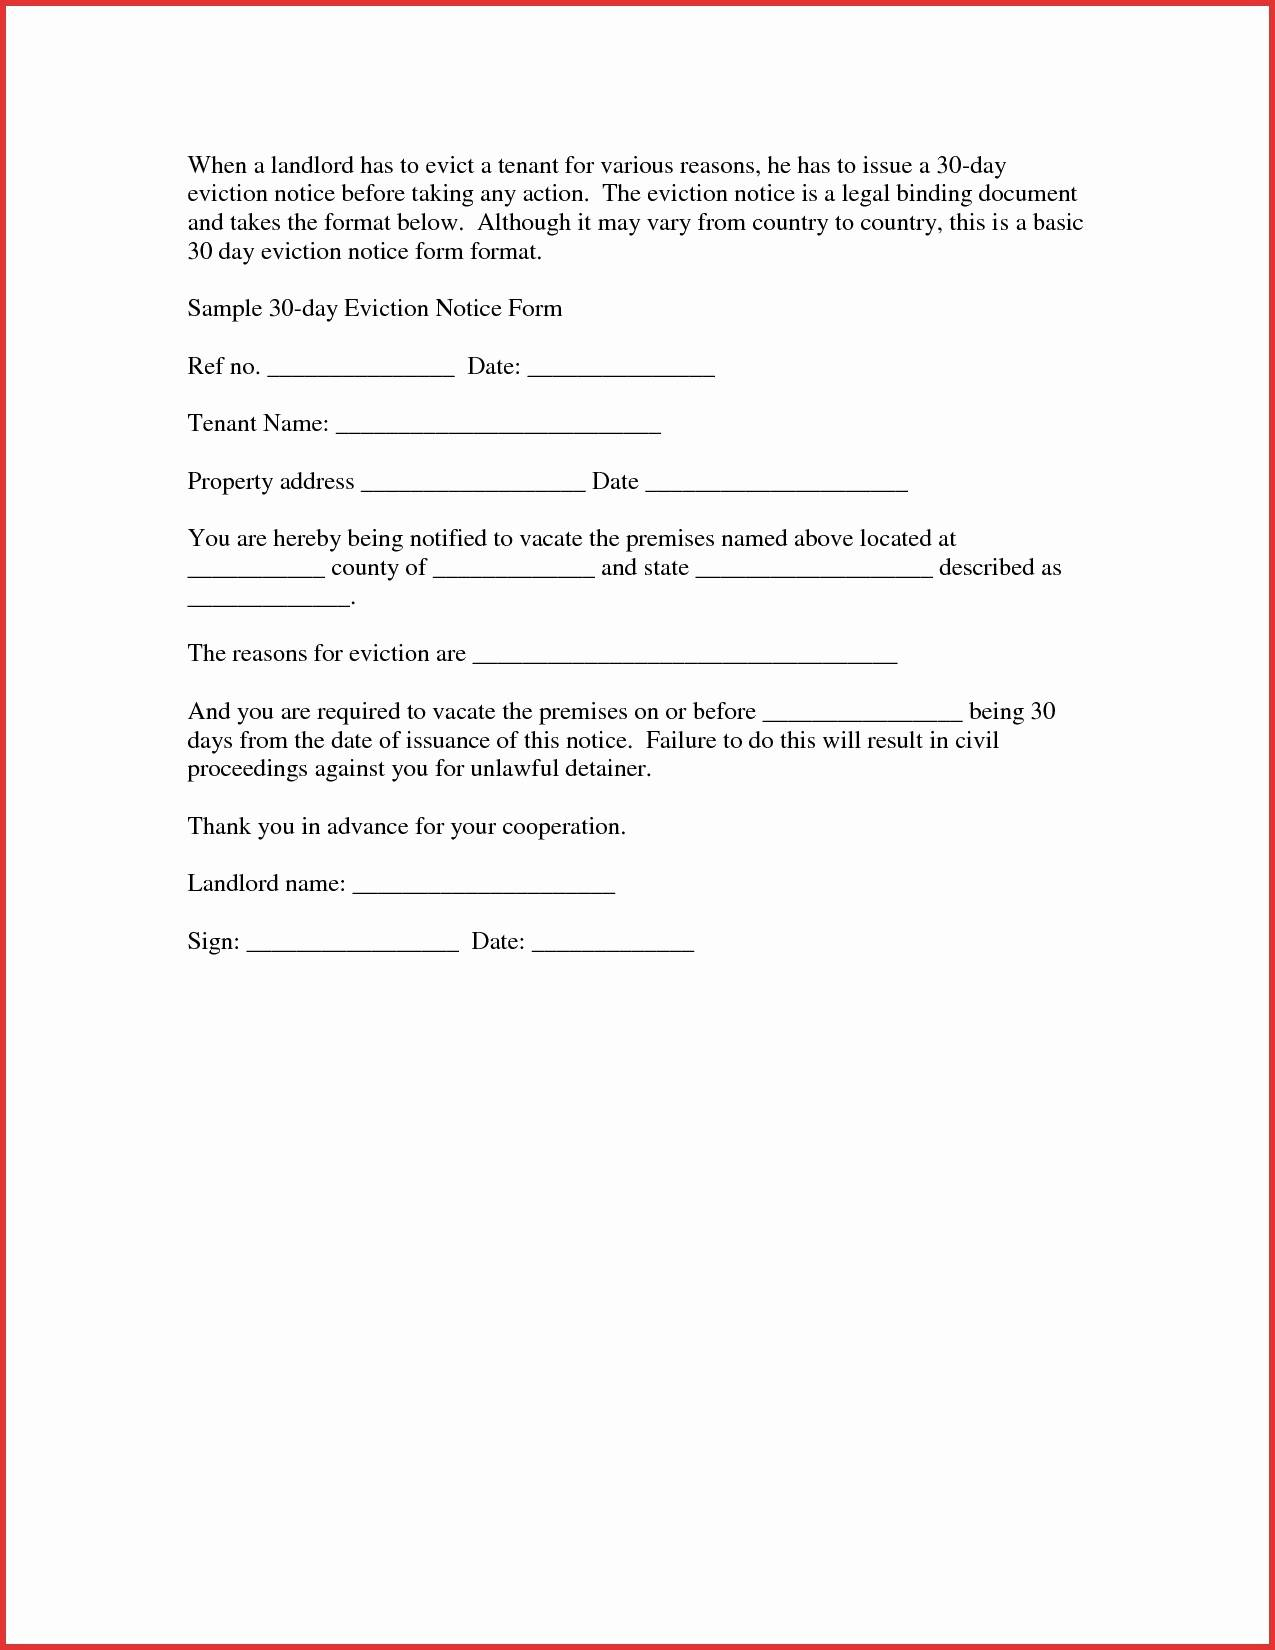 Landlord Eviction Letter Template - Tenant Eviction Letter Template Best Free Eviction Notice